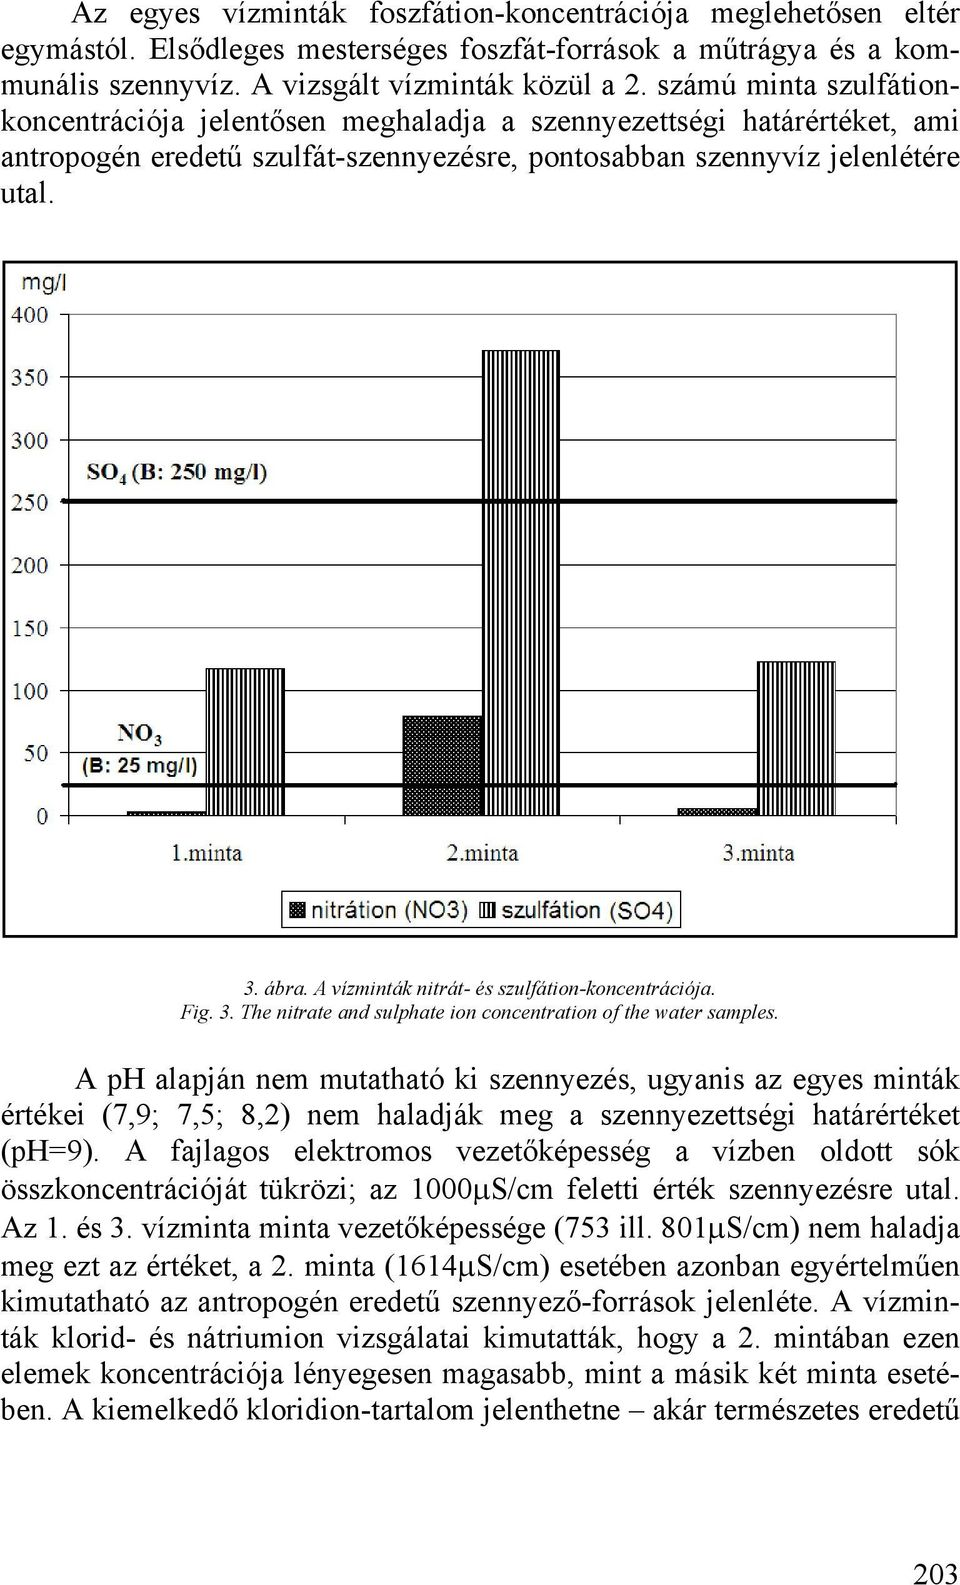 A vízminták nitrát- és szulfátion-koncentrációja. Fig. 3. The nitrate and sulphate ion concentration of the water samples.